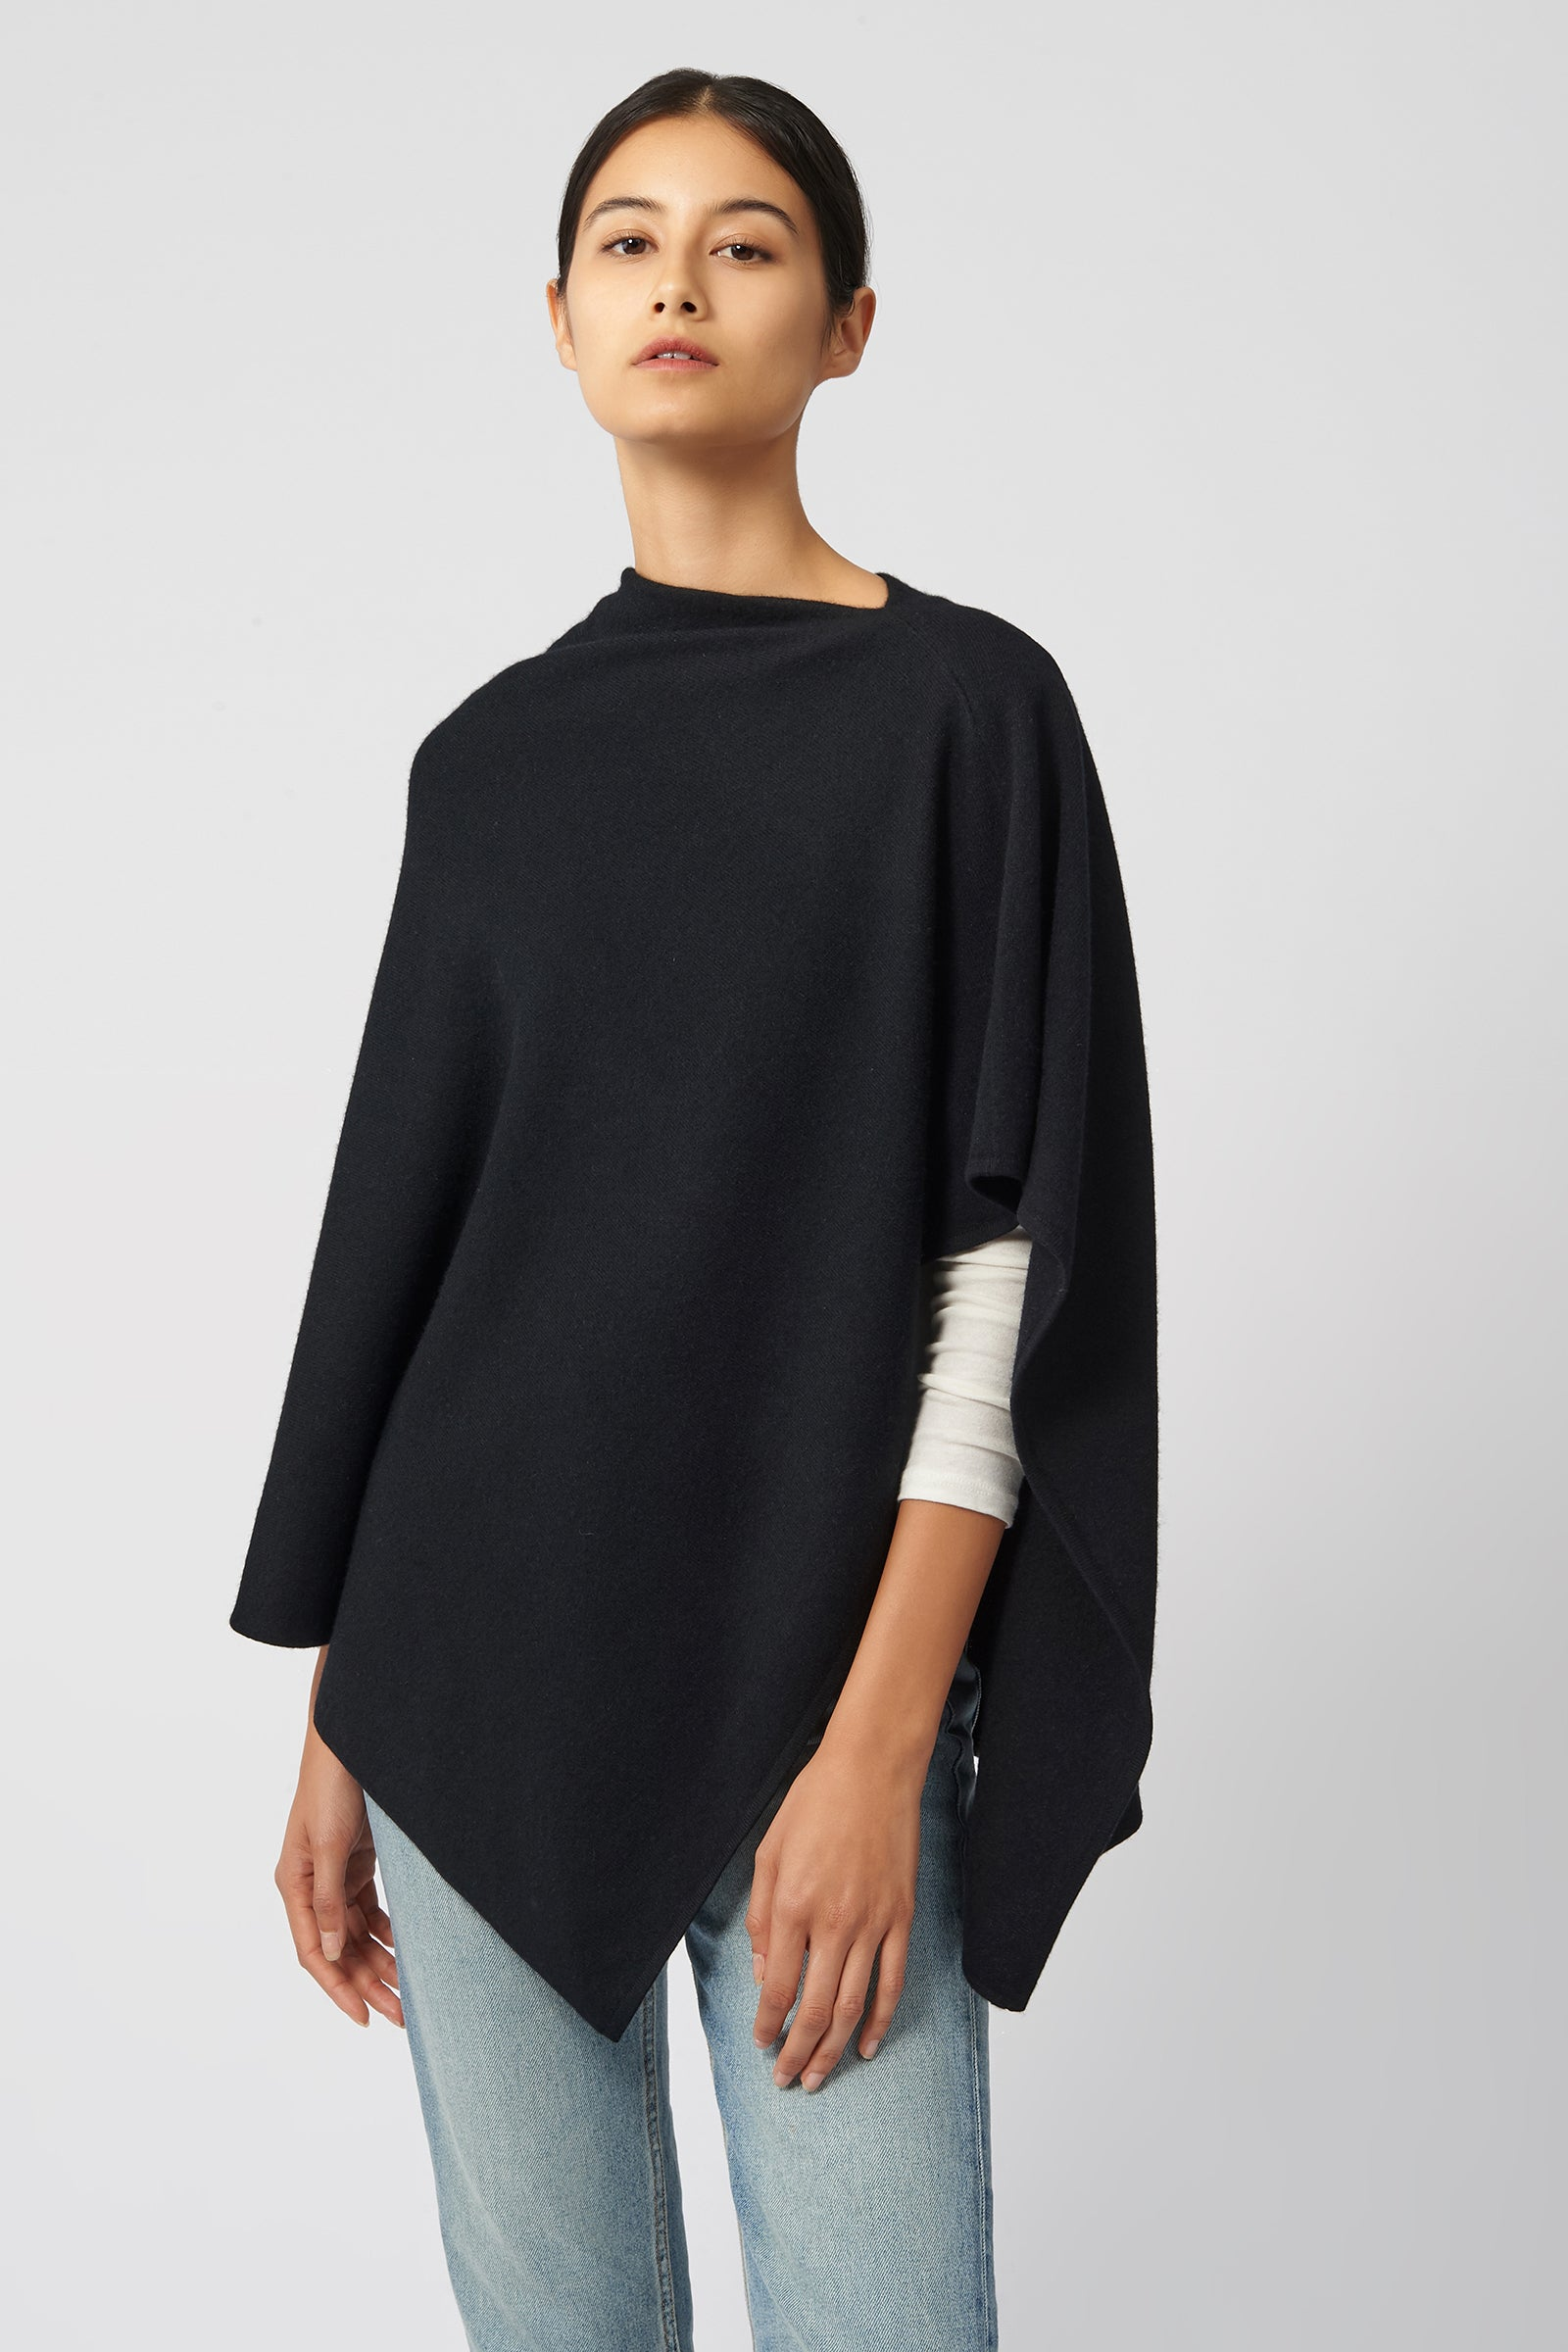 Kal Rieman Cashmere Poncho in Black on Model Front View